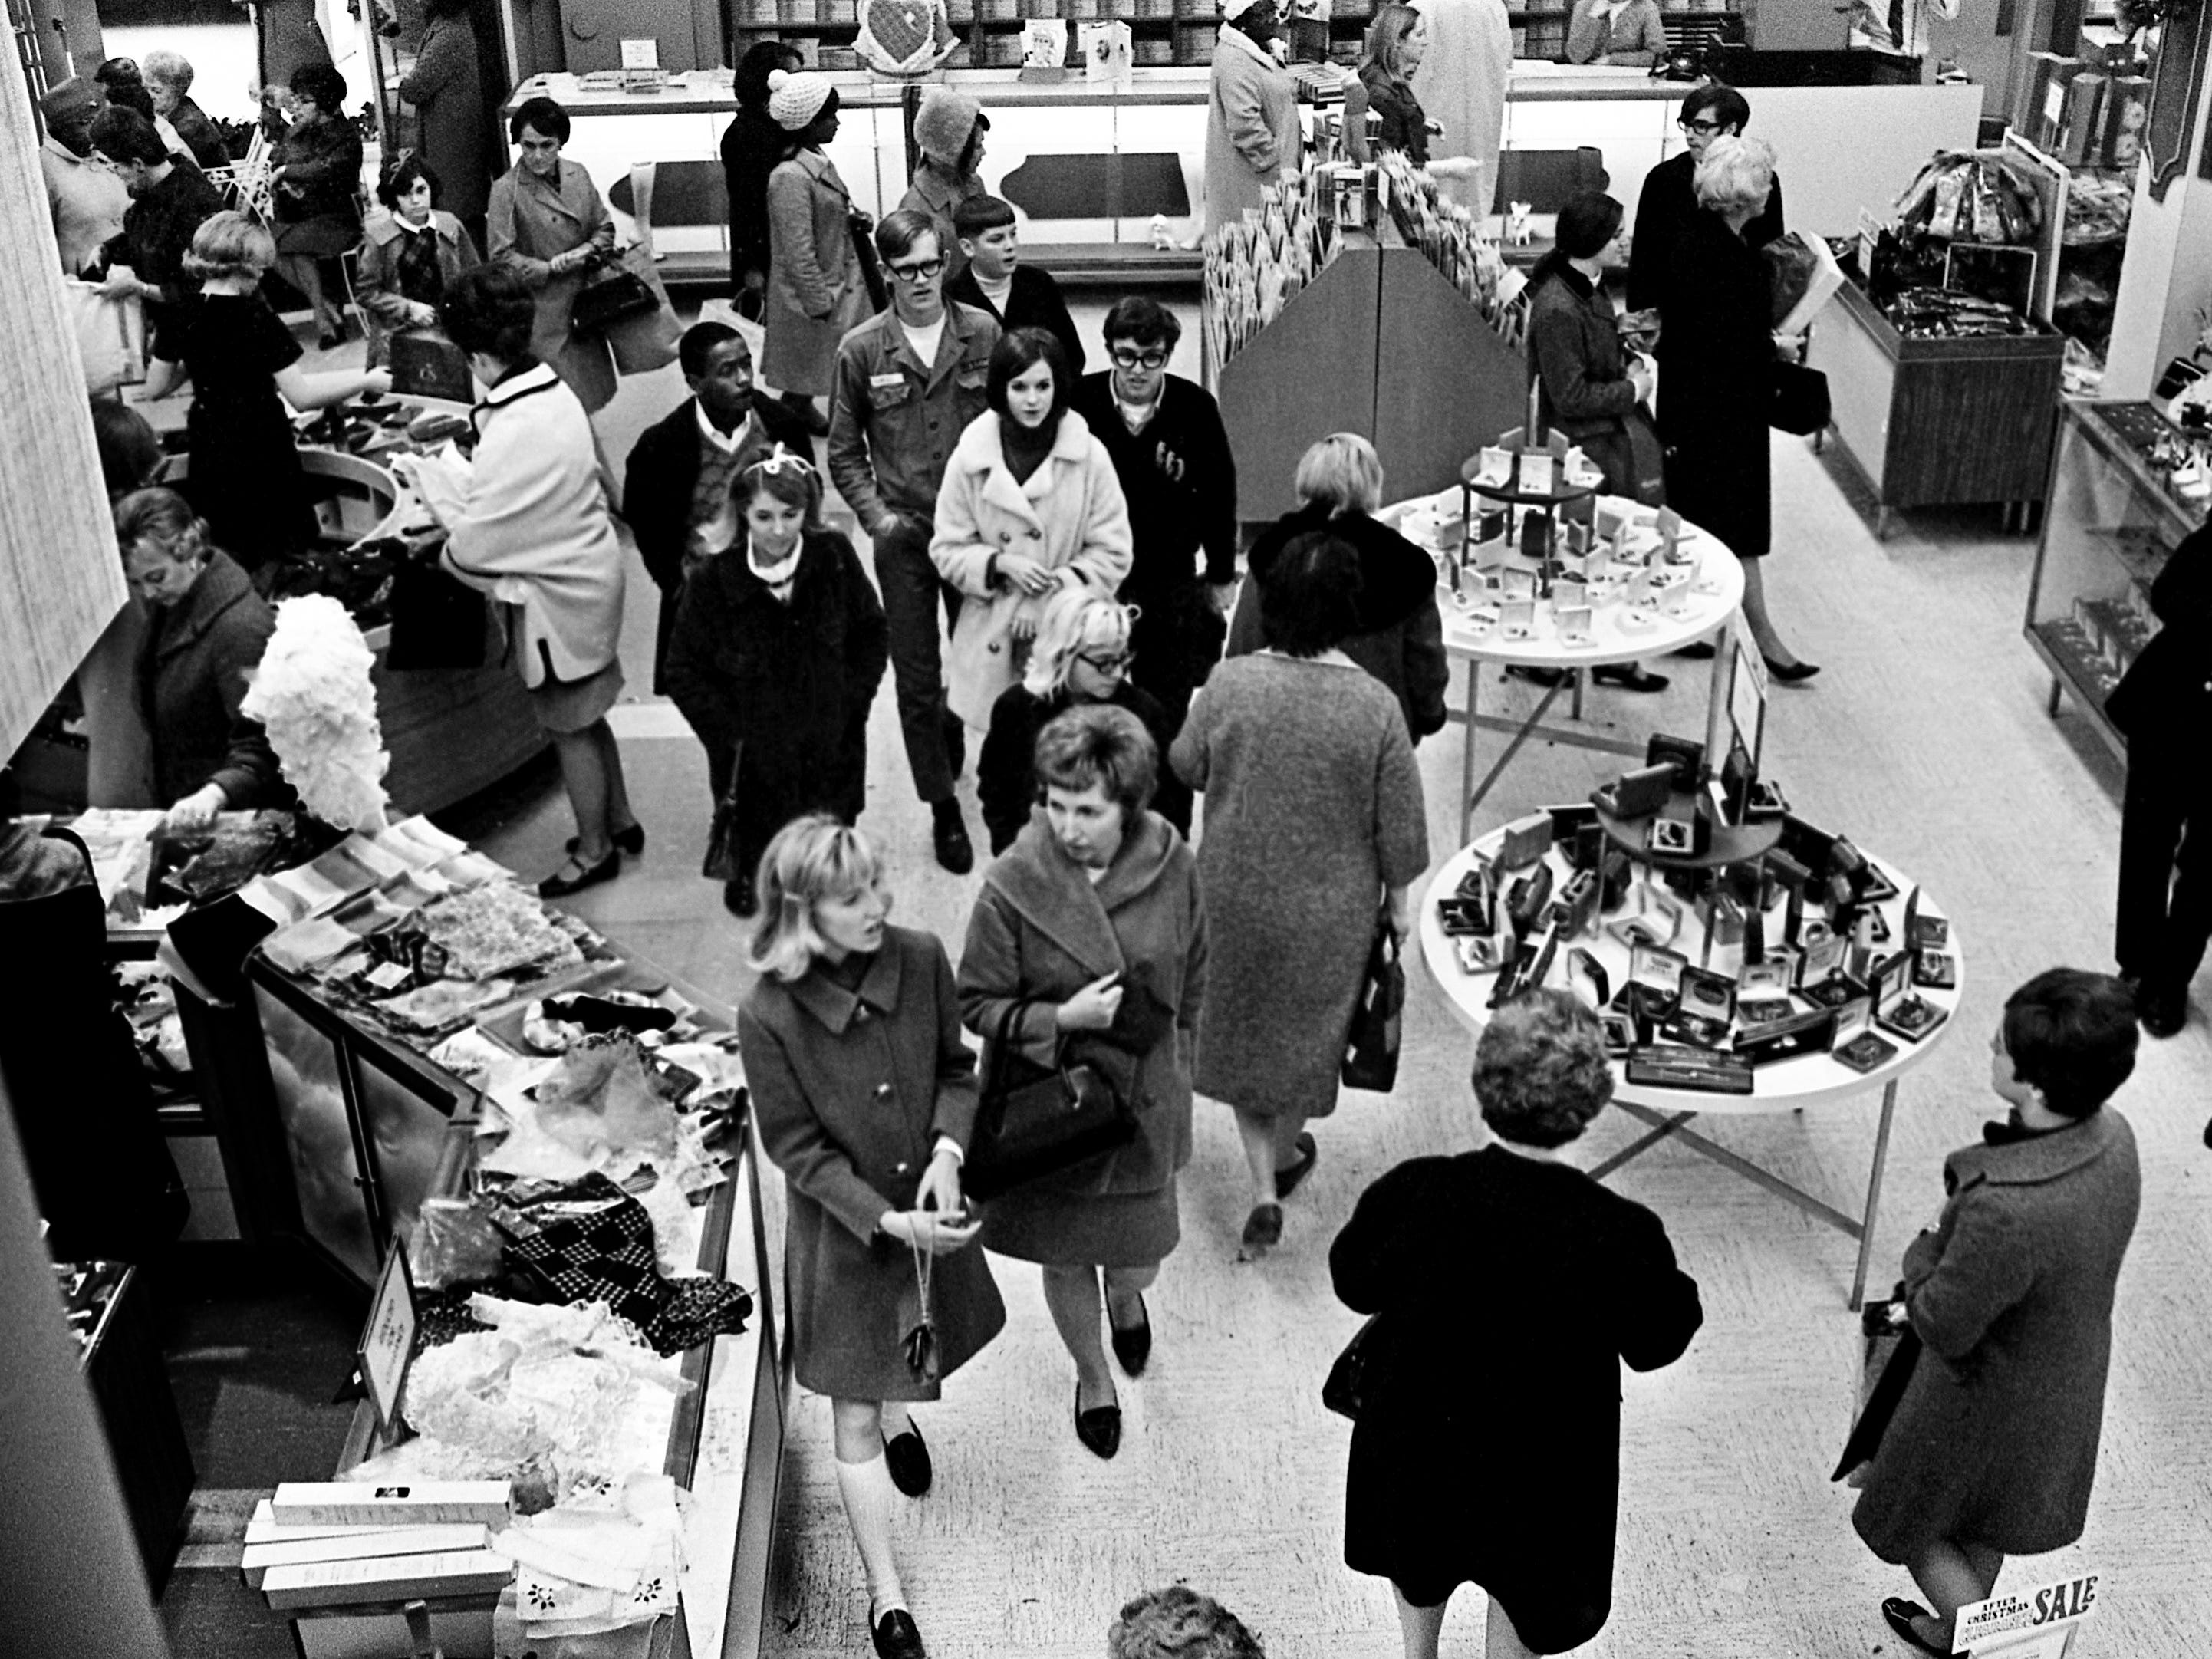 One of the department stores on Church Street in downtown Nashville is packed as shoppers check out the day after Christmas sales Dec. 26, 1968.